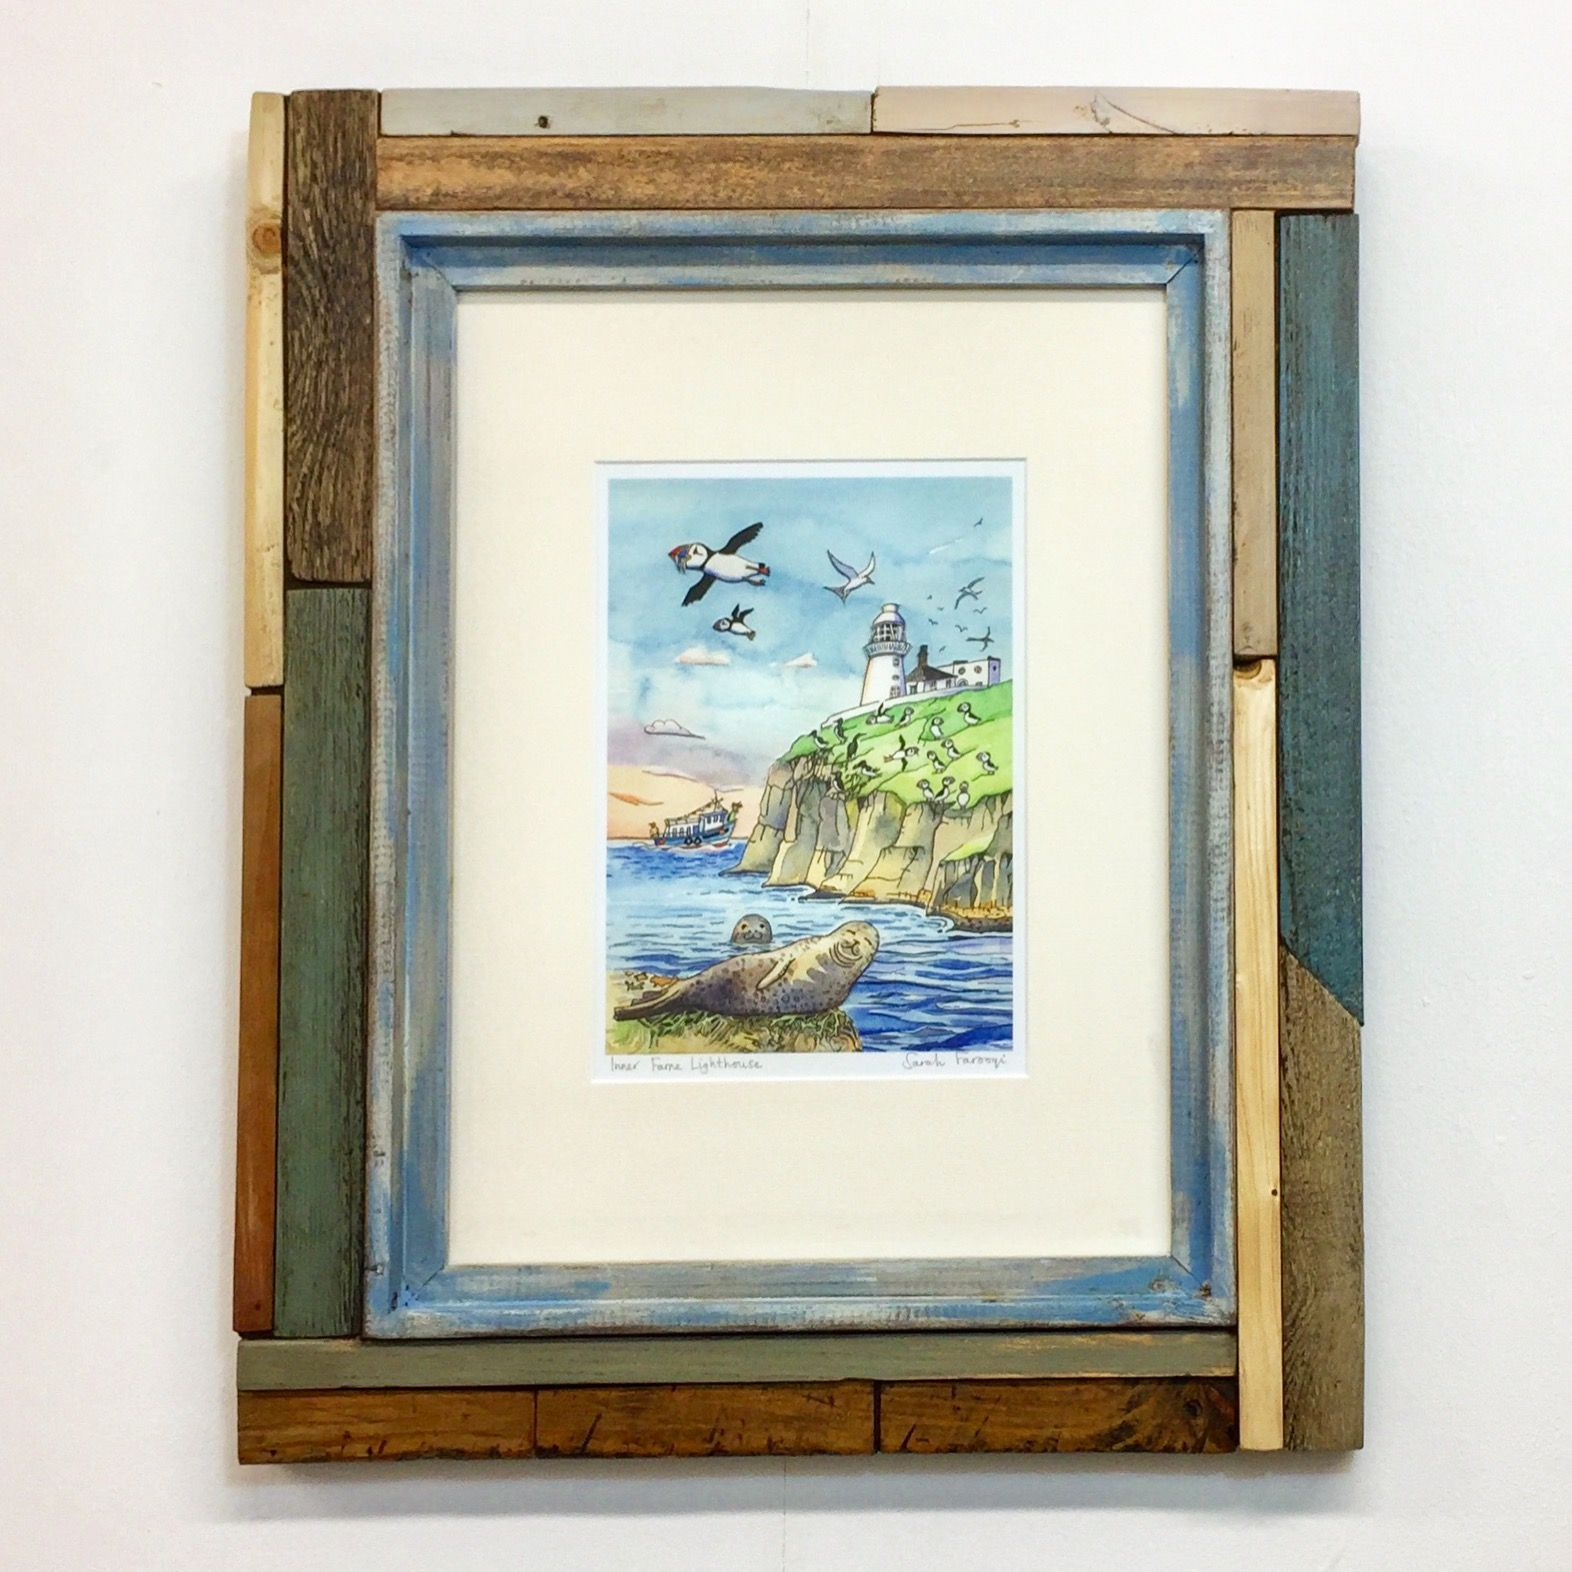 Puffins! I love puffins. I love the word puffins as well. Giclee print by Sarah Farooqi and reclaimed wood frame by me. The latter includes pieces from an artist's easel.